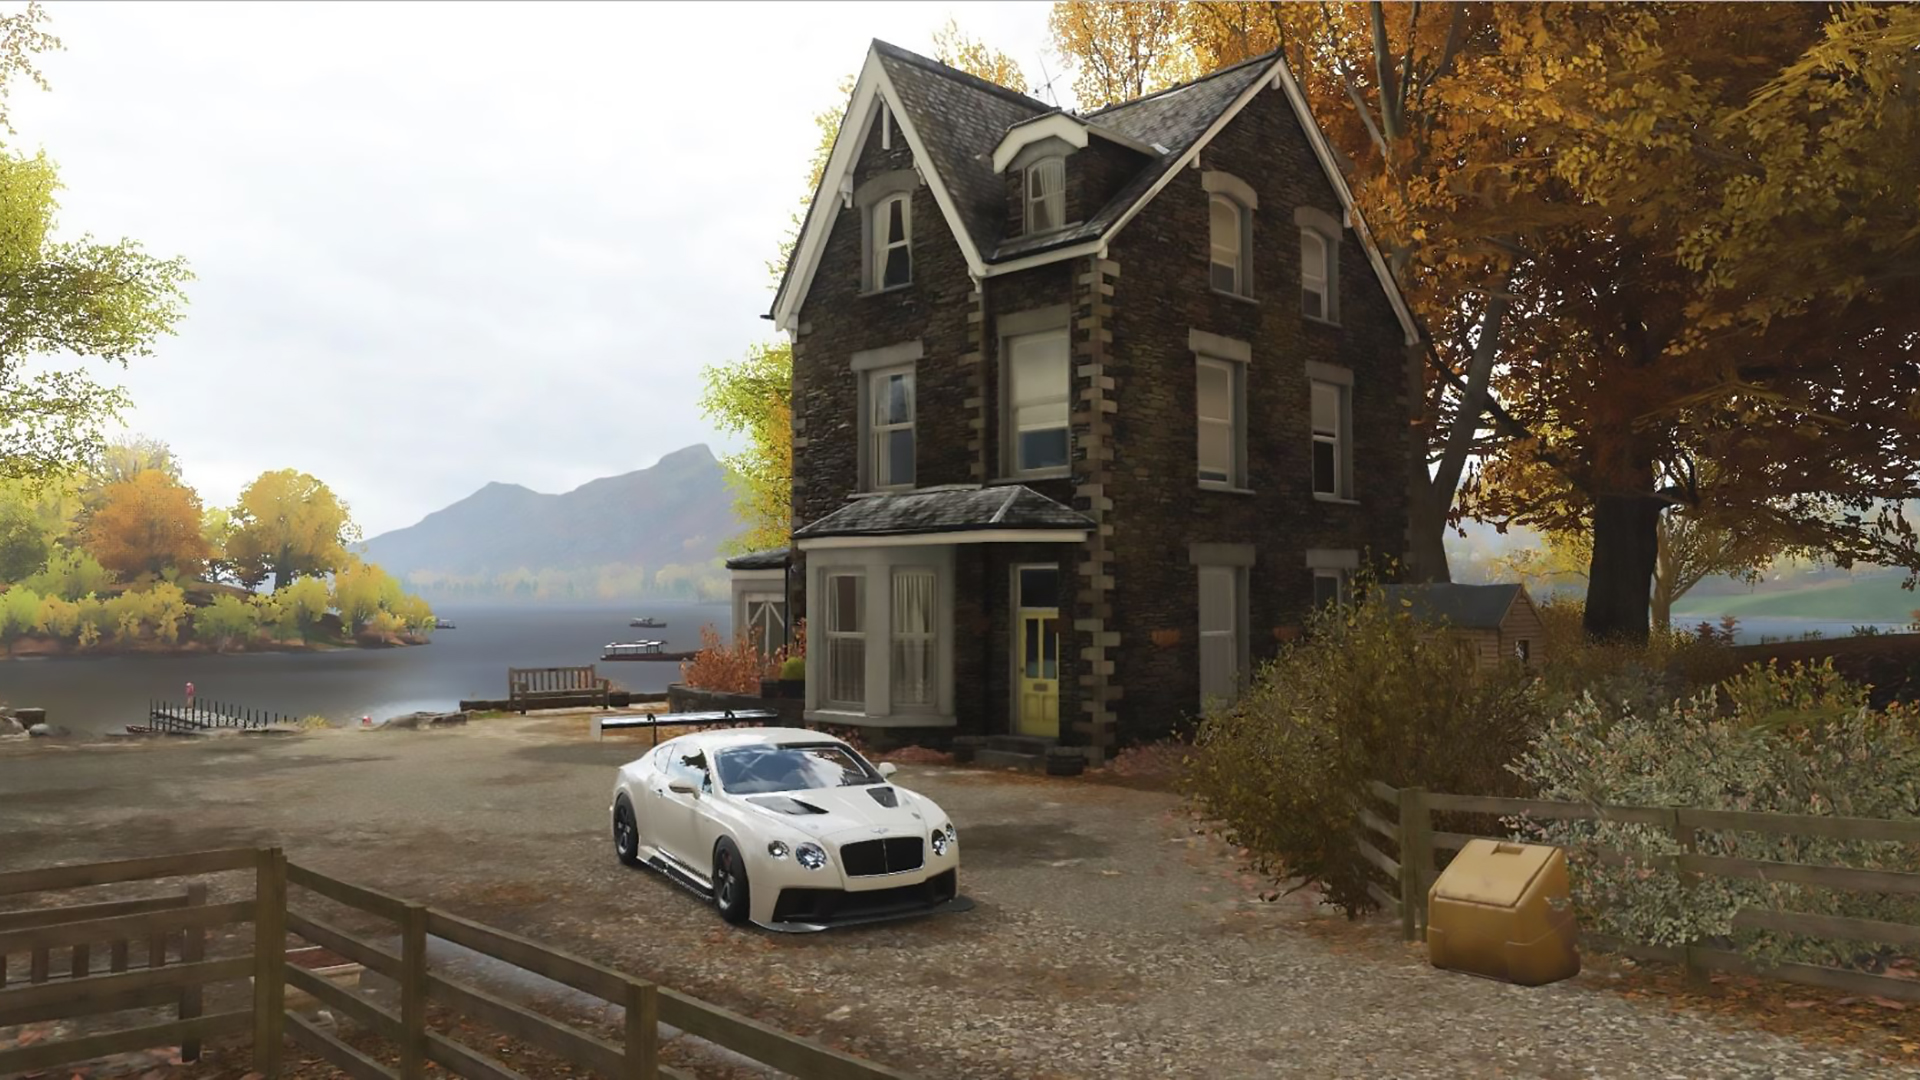 Forza Horizon 4 House locations guide: Every house you can